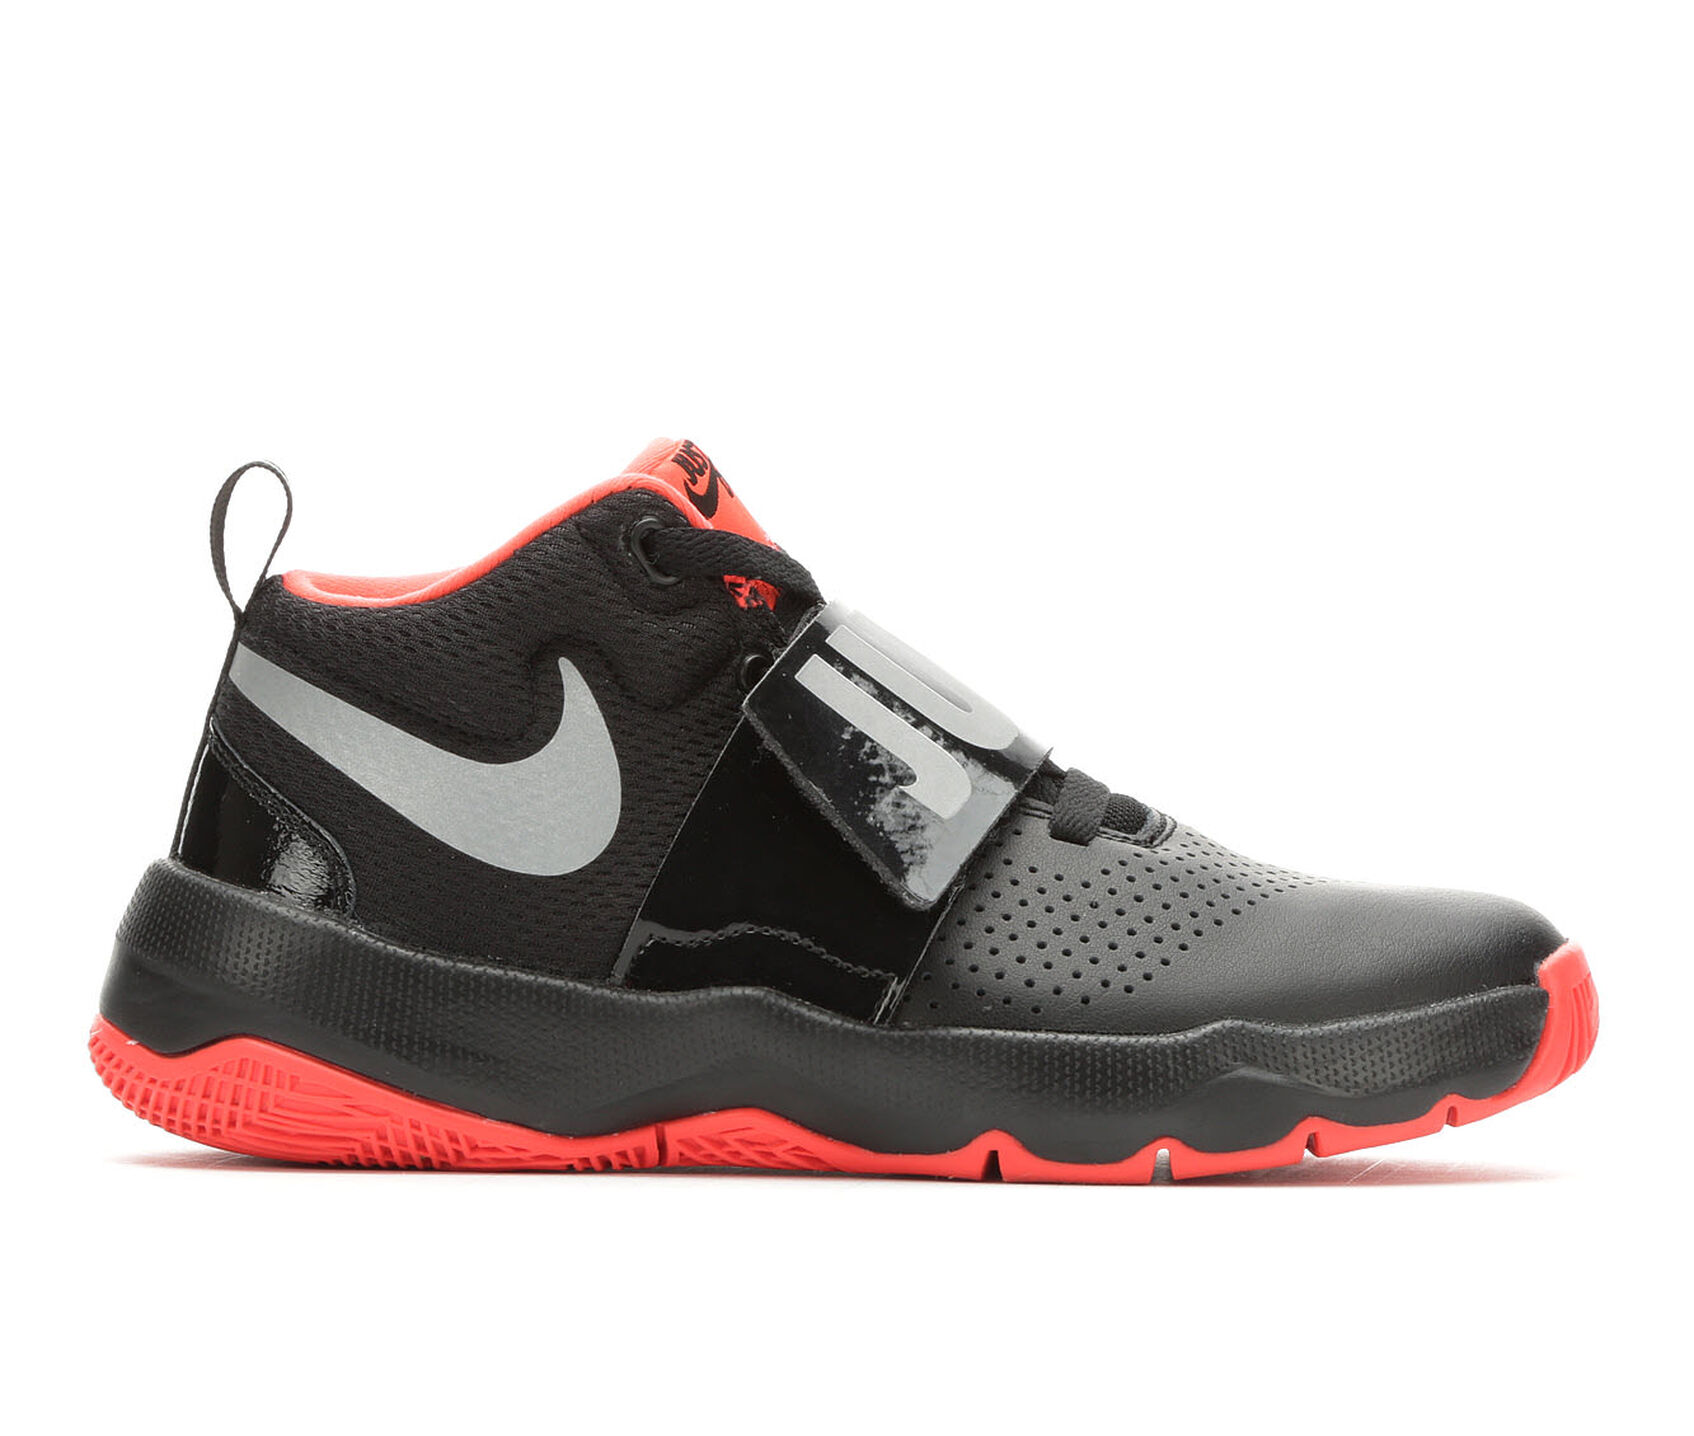 f9d7e85890e6c0 ... Nike Big Kid Team Hustle D8 JDI High Top Basketball Shoes. Previous